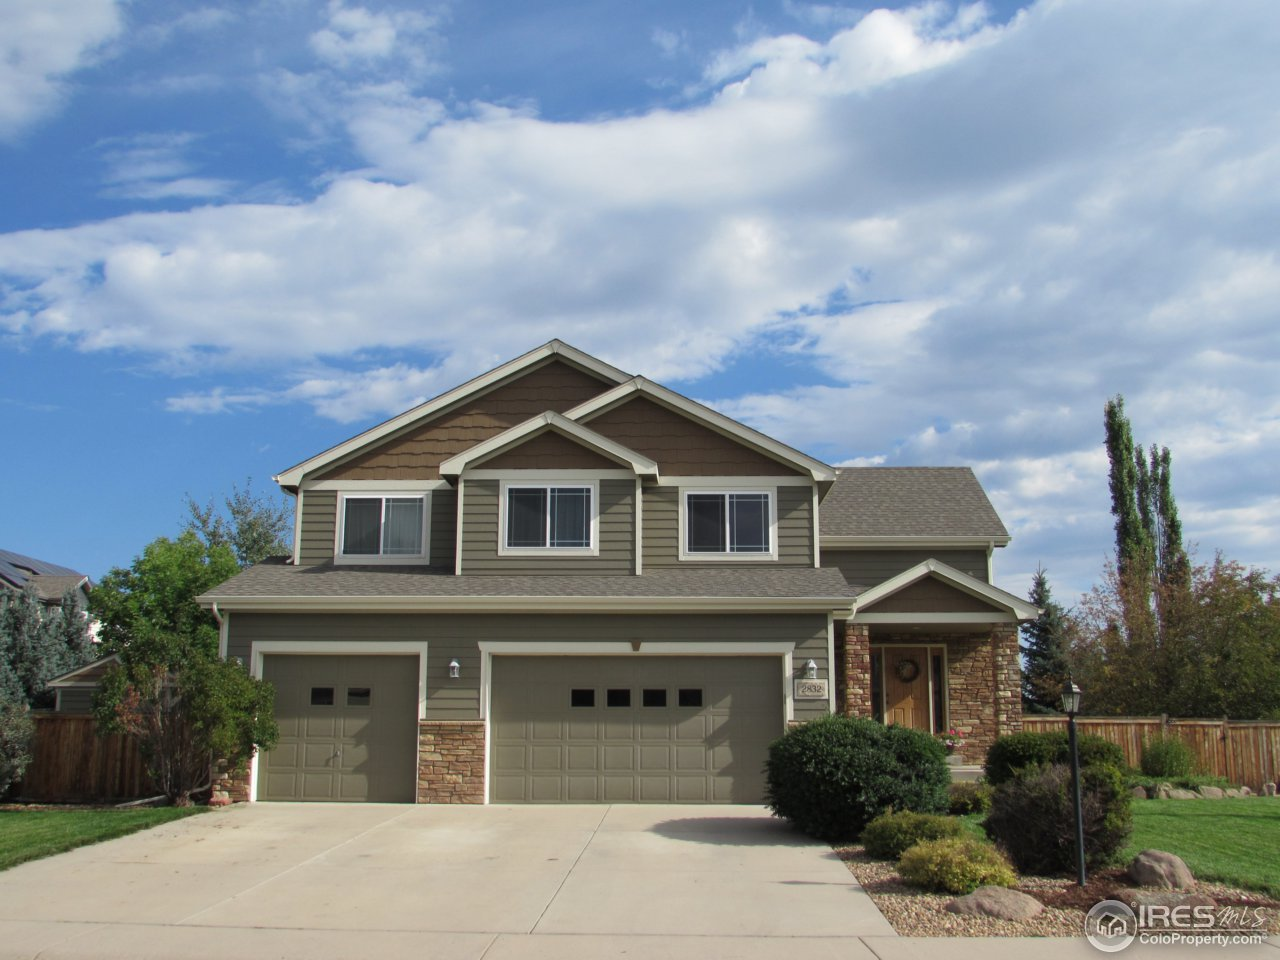 2832 HEADWATER DR, FORT COLLINS, CO 80521